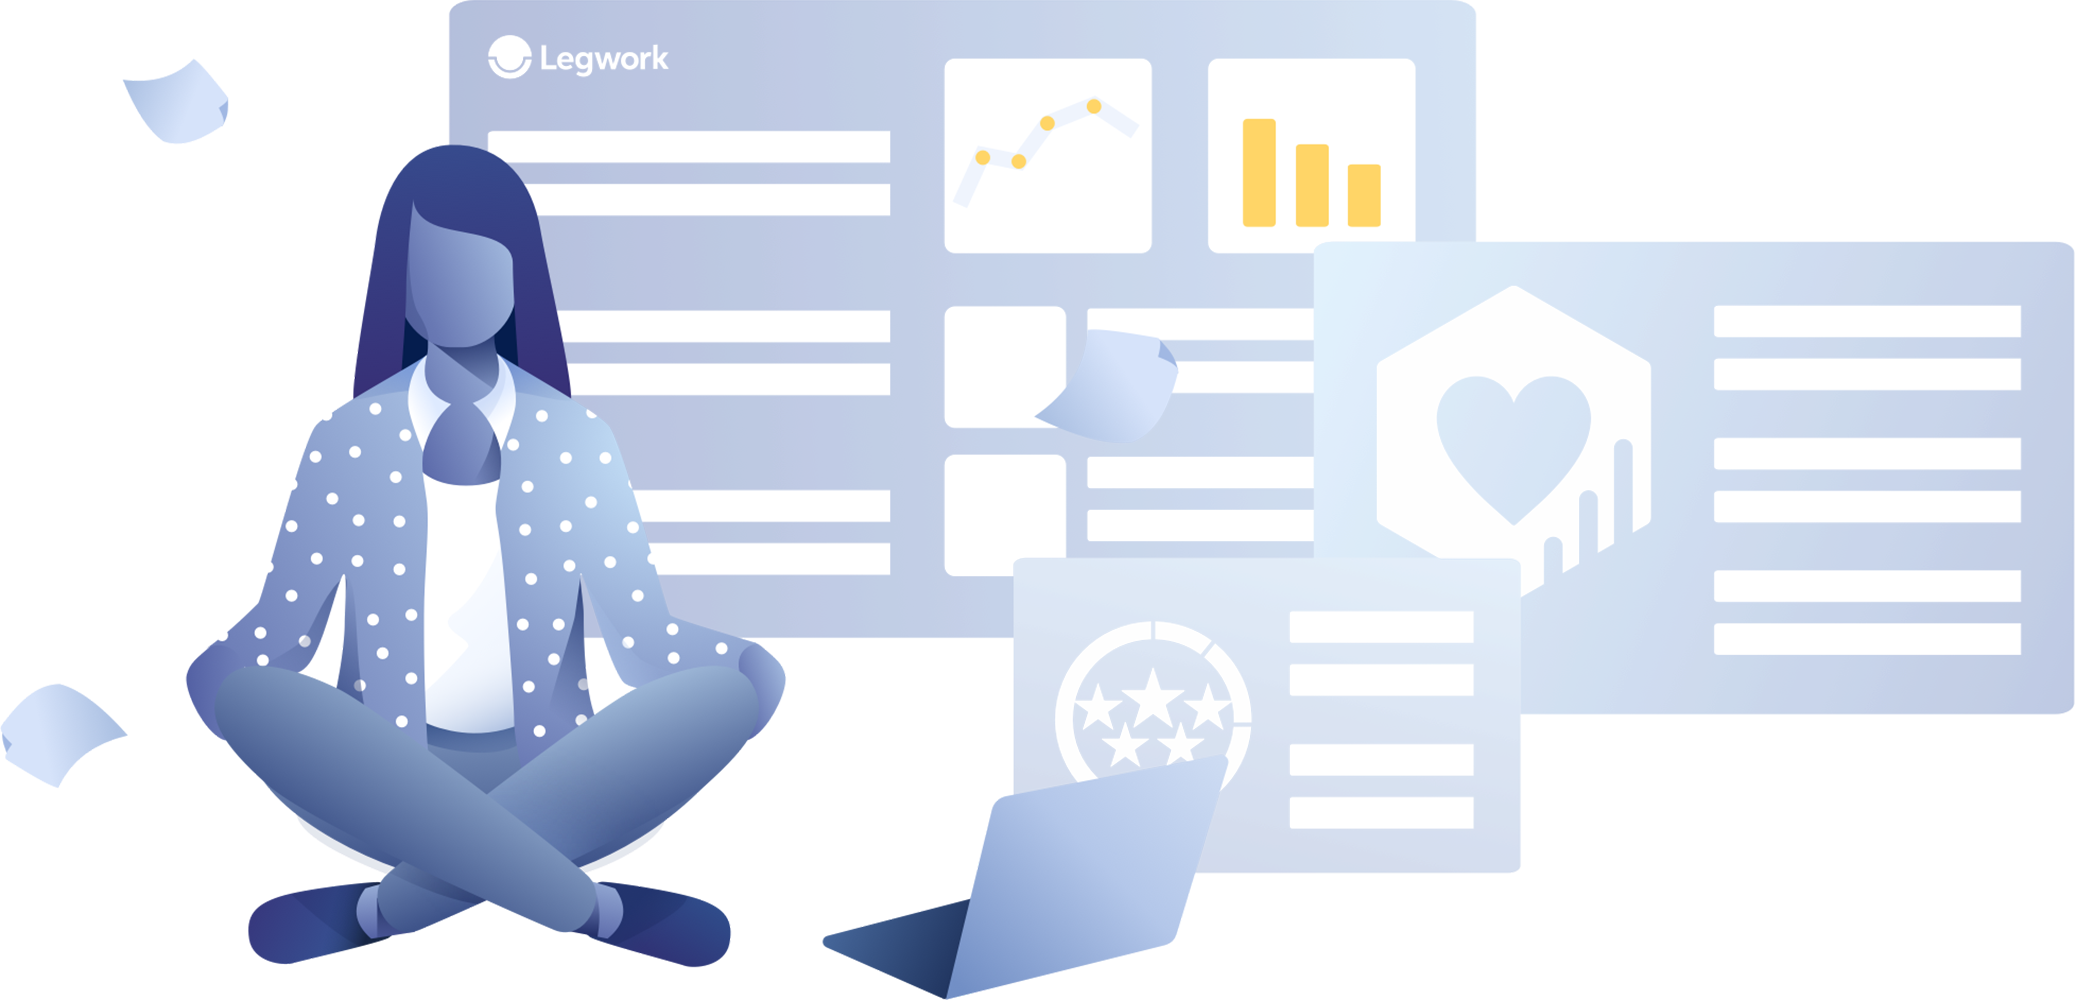 Practice Efficiency - Easily confirm and track appointments with Legwork's intuitive dashboard. Streamline your day with real-time to-do and task lists, while communicating freely with patients.